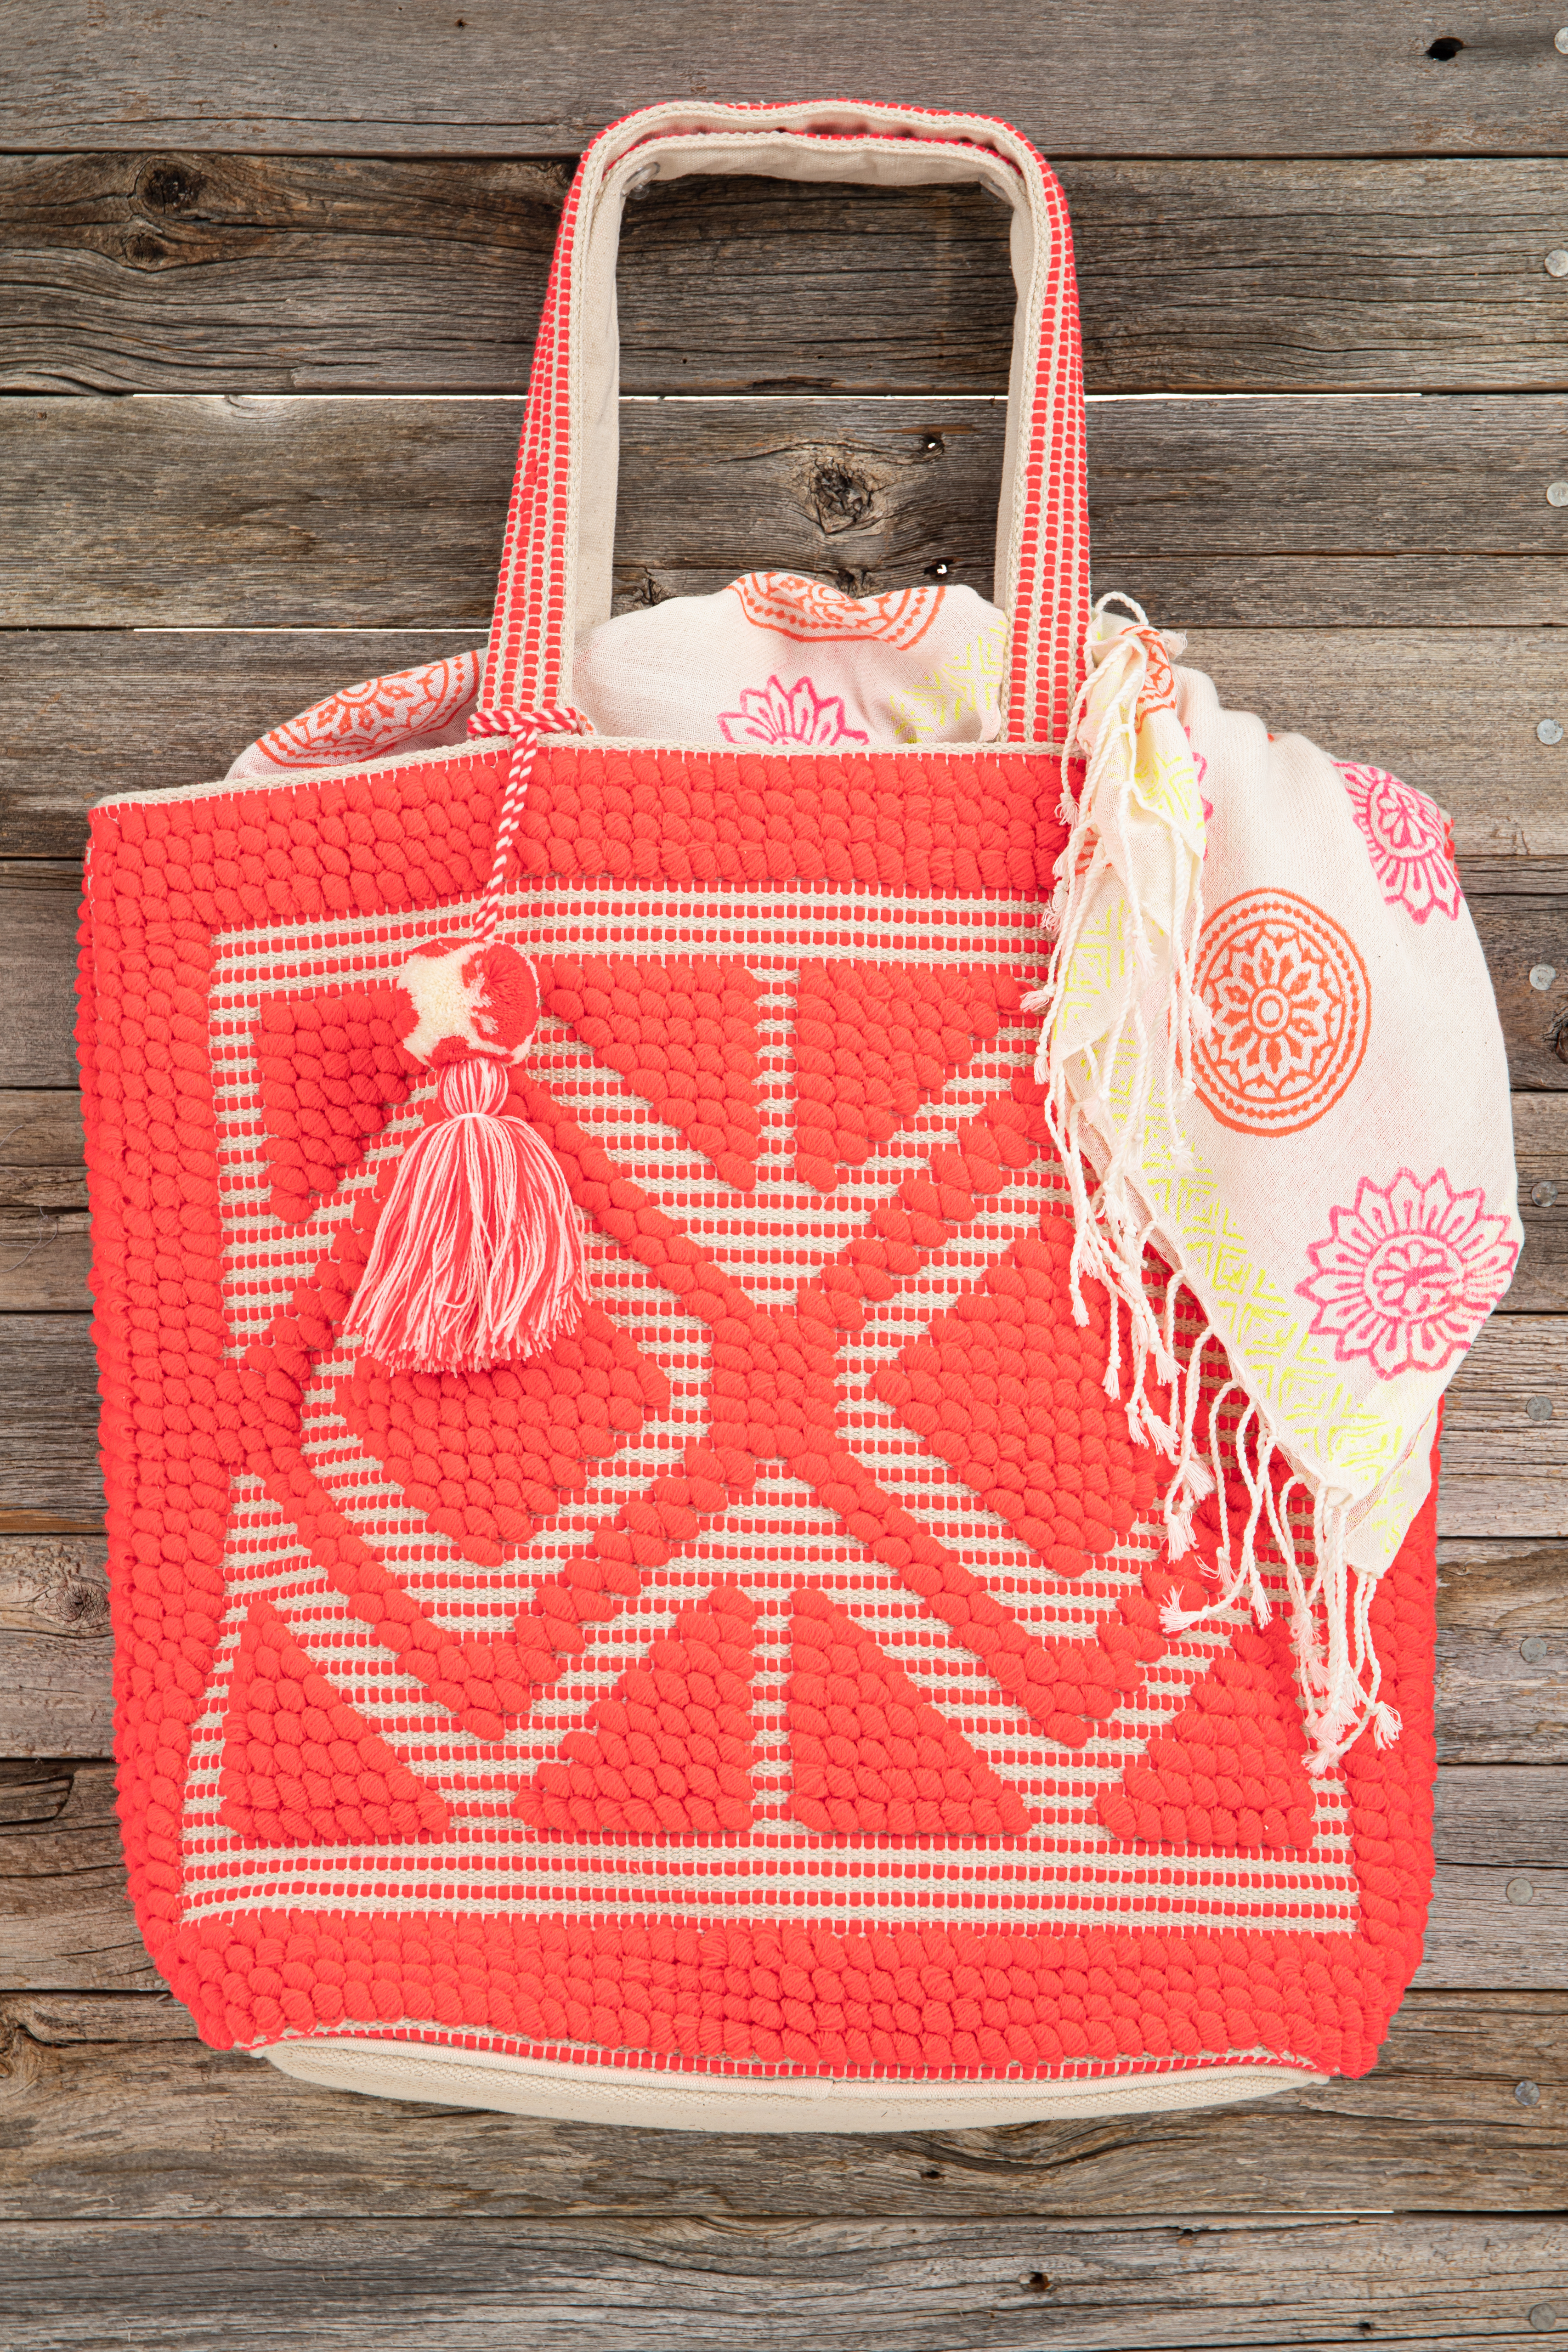 Hot Pink and Oatmeal Large Woven Tote Bag with Tassel Detail